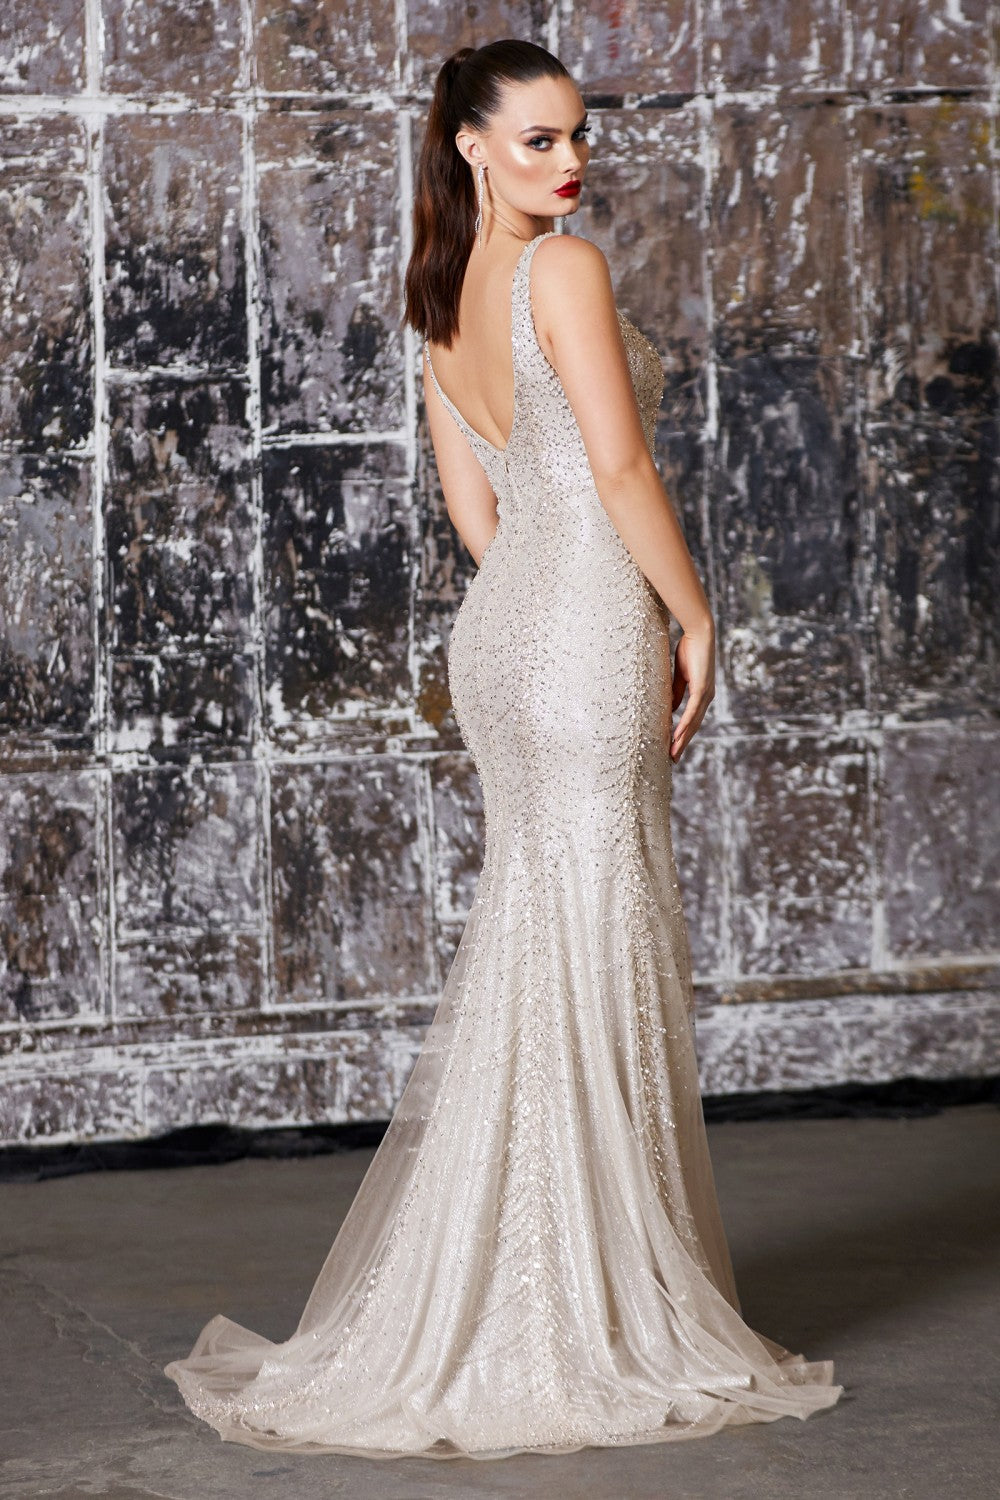 Pandora Dress Fitted Beaded Gown in Champagne C905TNR-Champagne